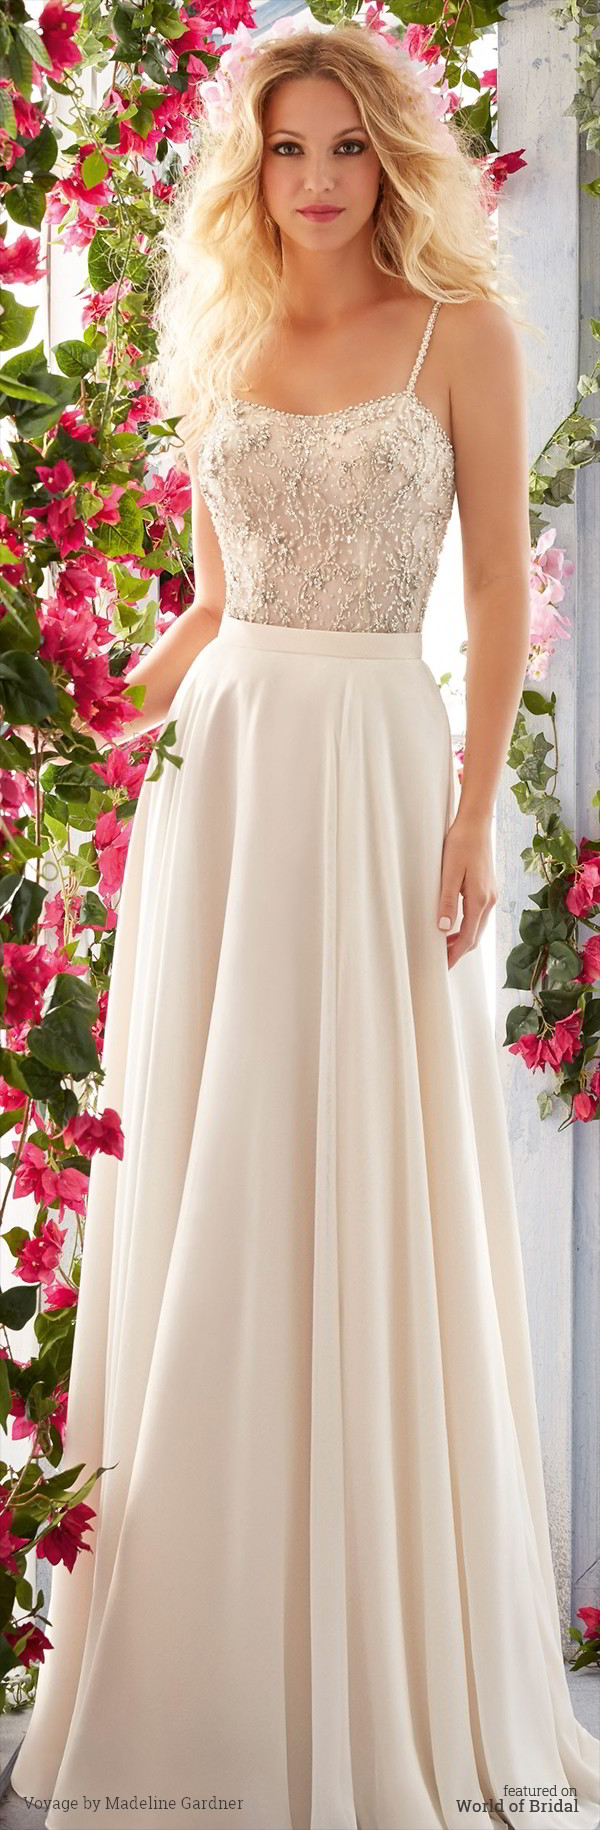 Voyage by Madeline Gardner Spring 2016 Wedding Dresses - World of Bridal